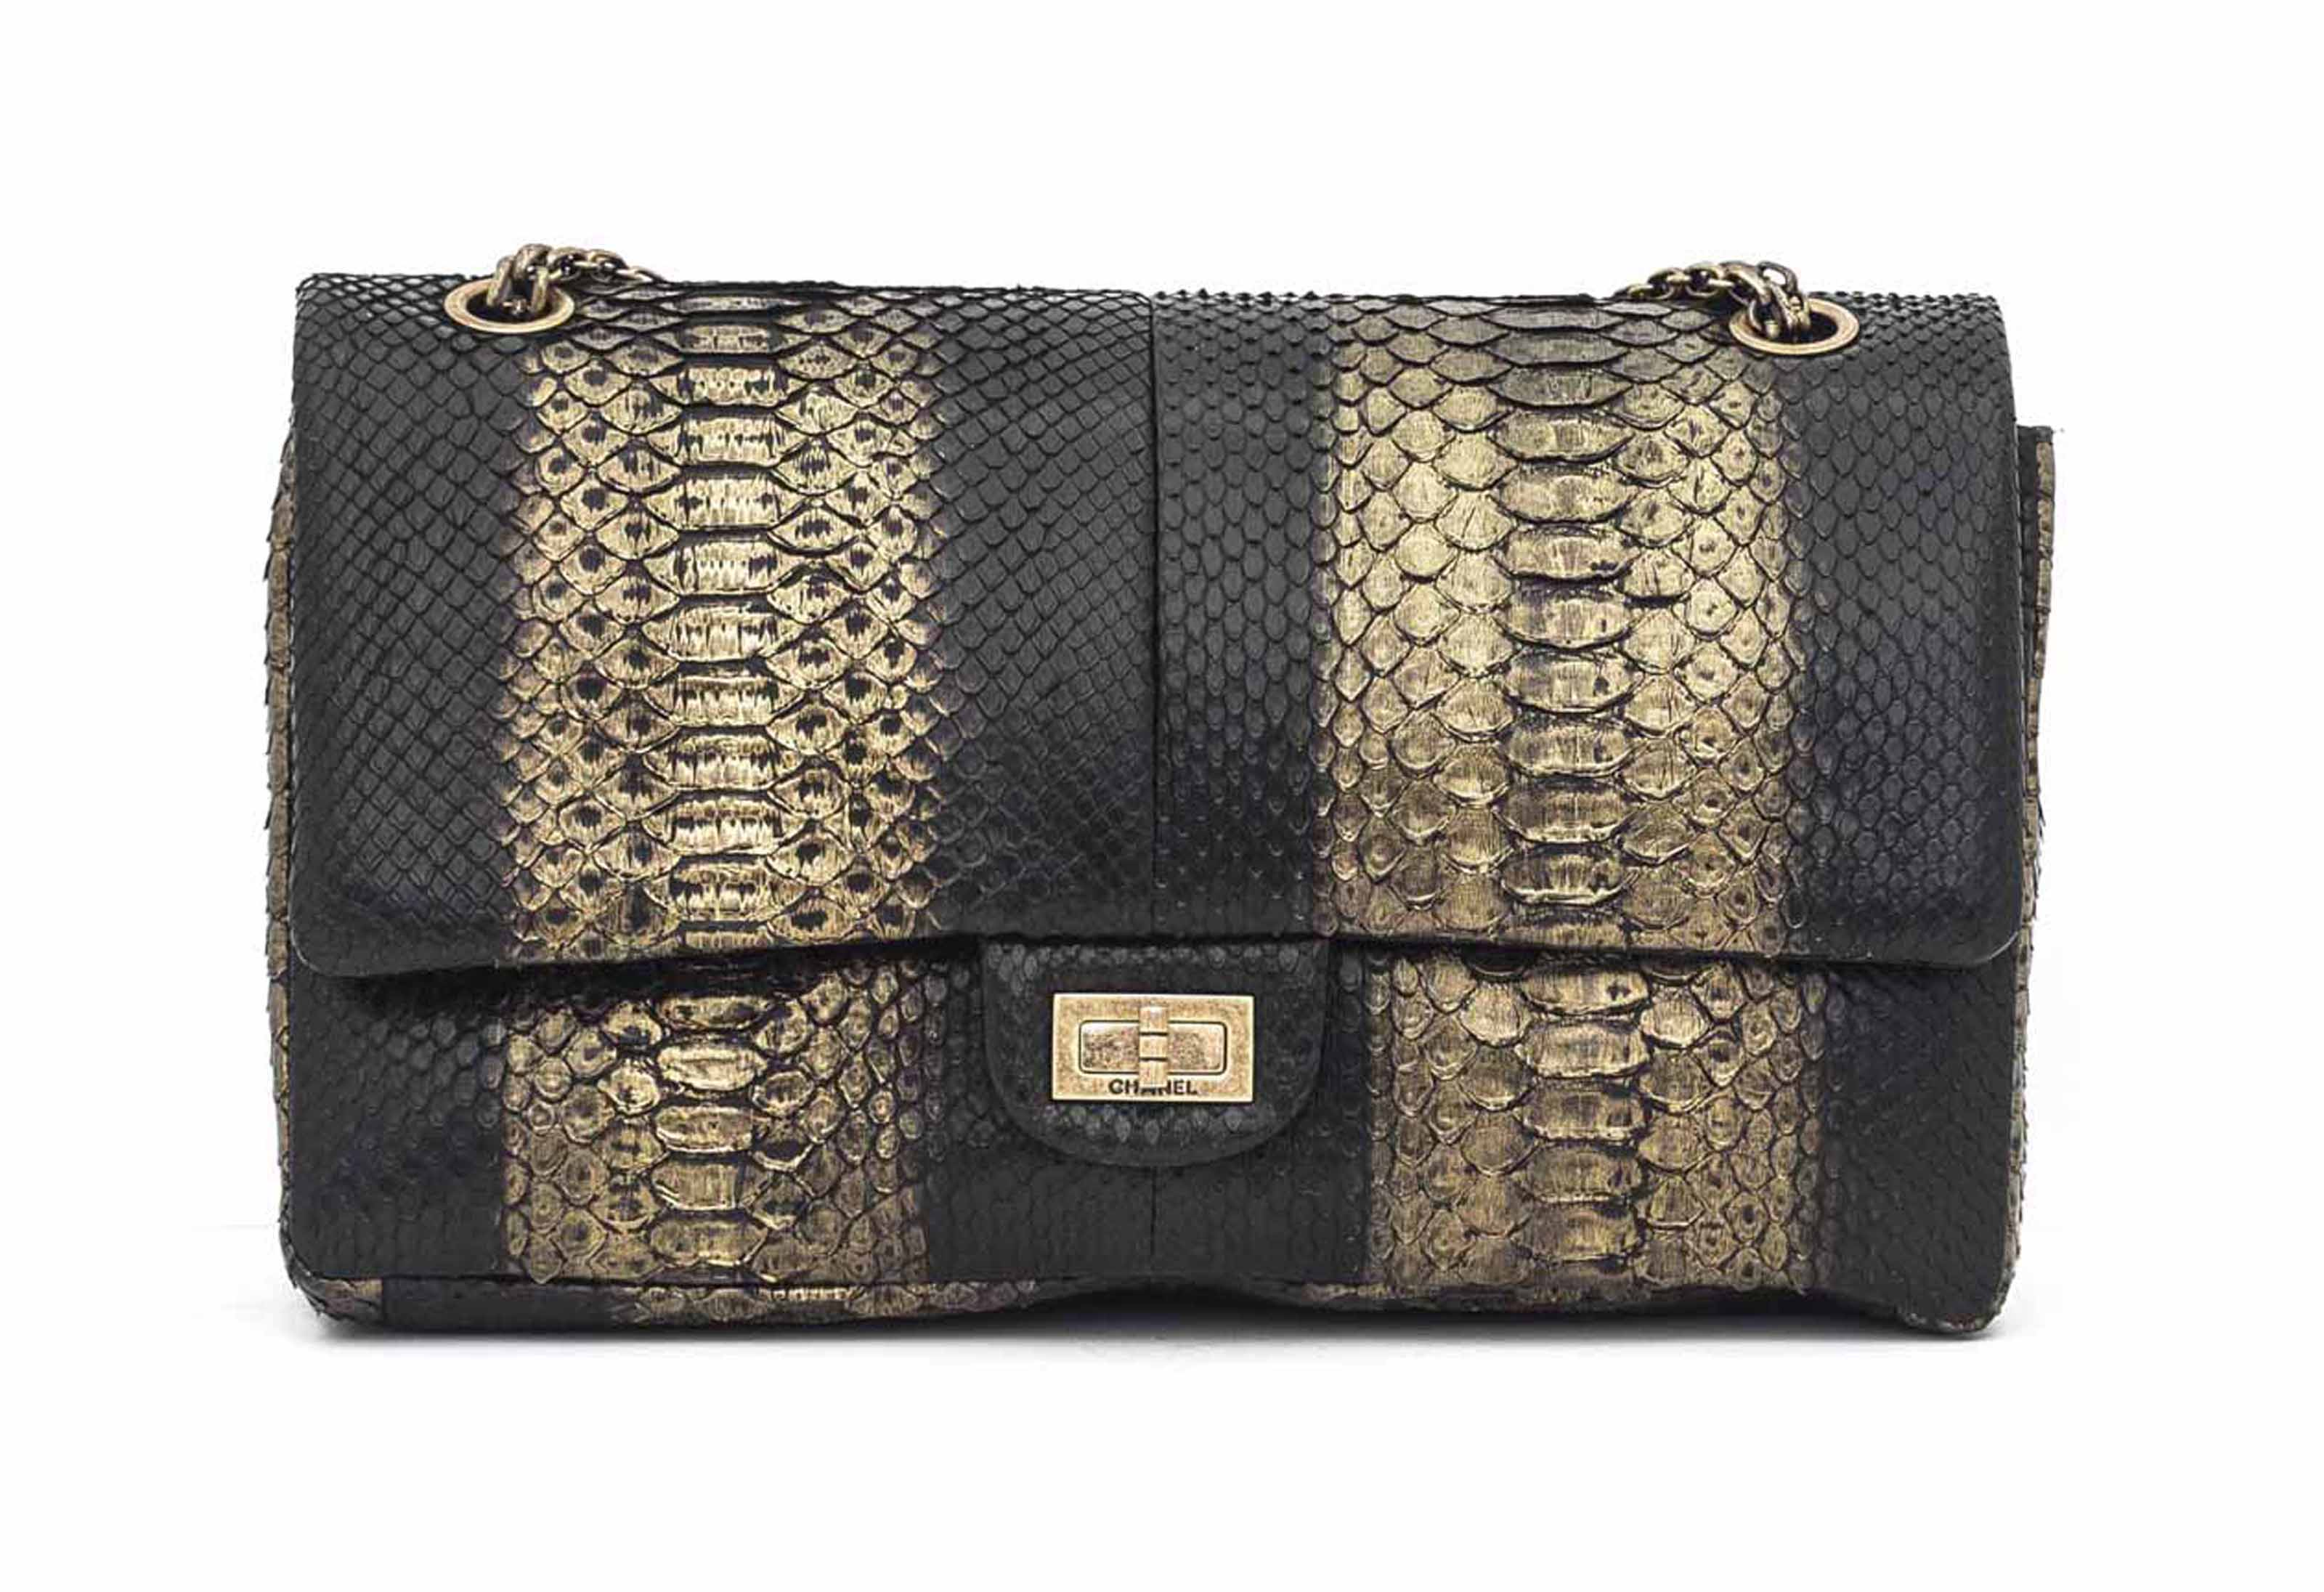 A BLACK & GOLD PYTHON 2.55 DOUBLE FLAP BAG 225 WITH AGED GOLD HARDWARE